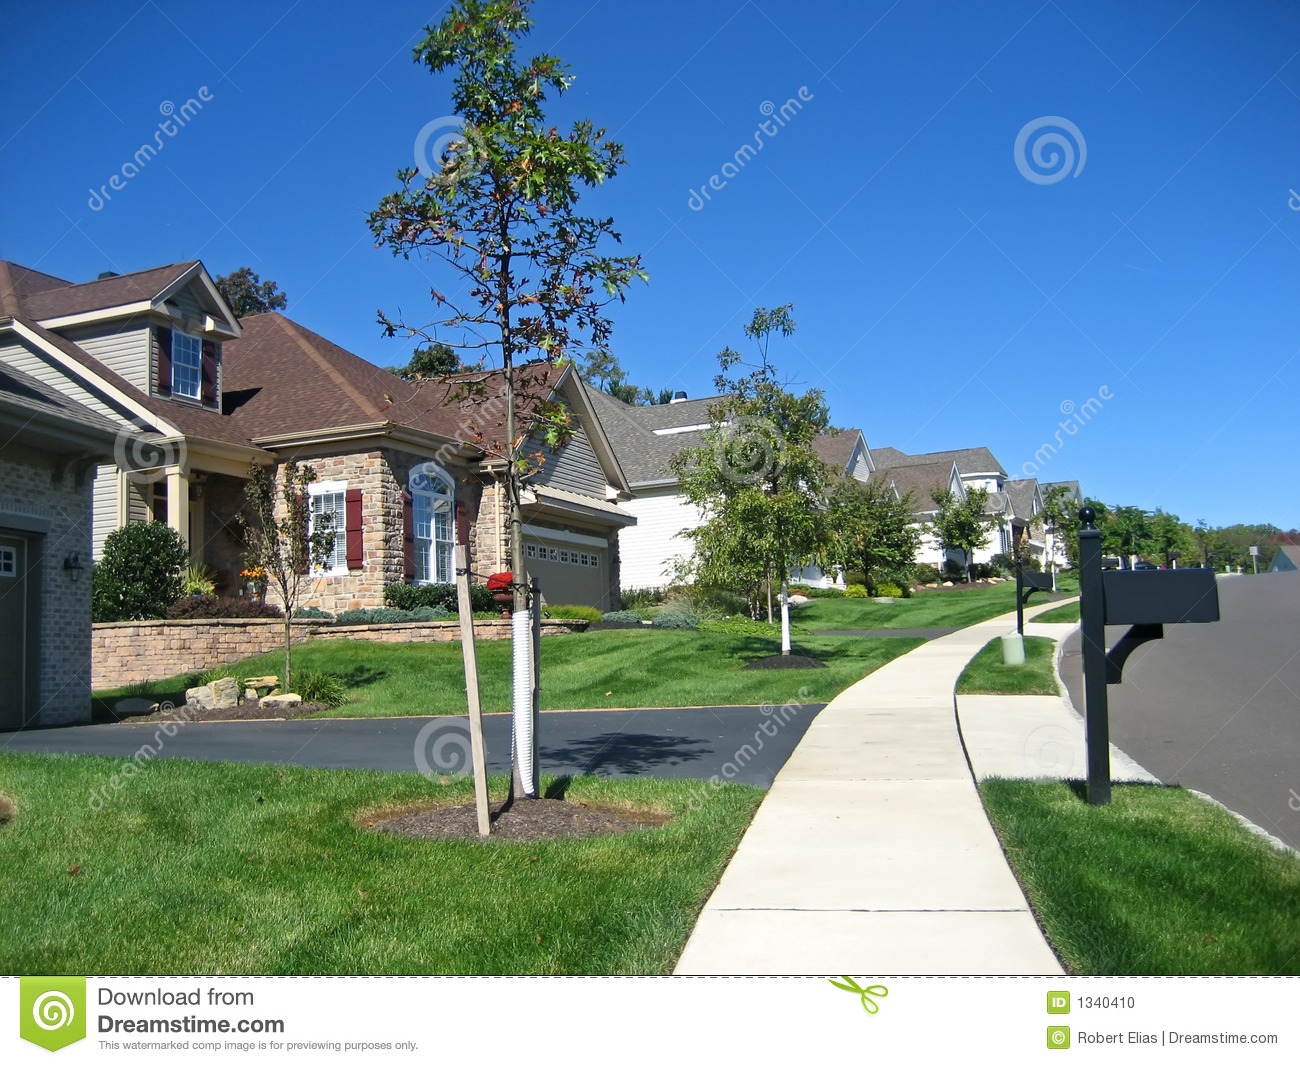 Cookie cutter houses stock photo image 1340410 for Cookie cutter house plans